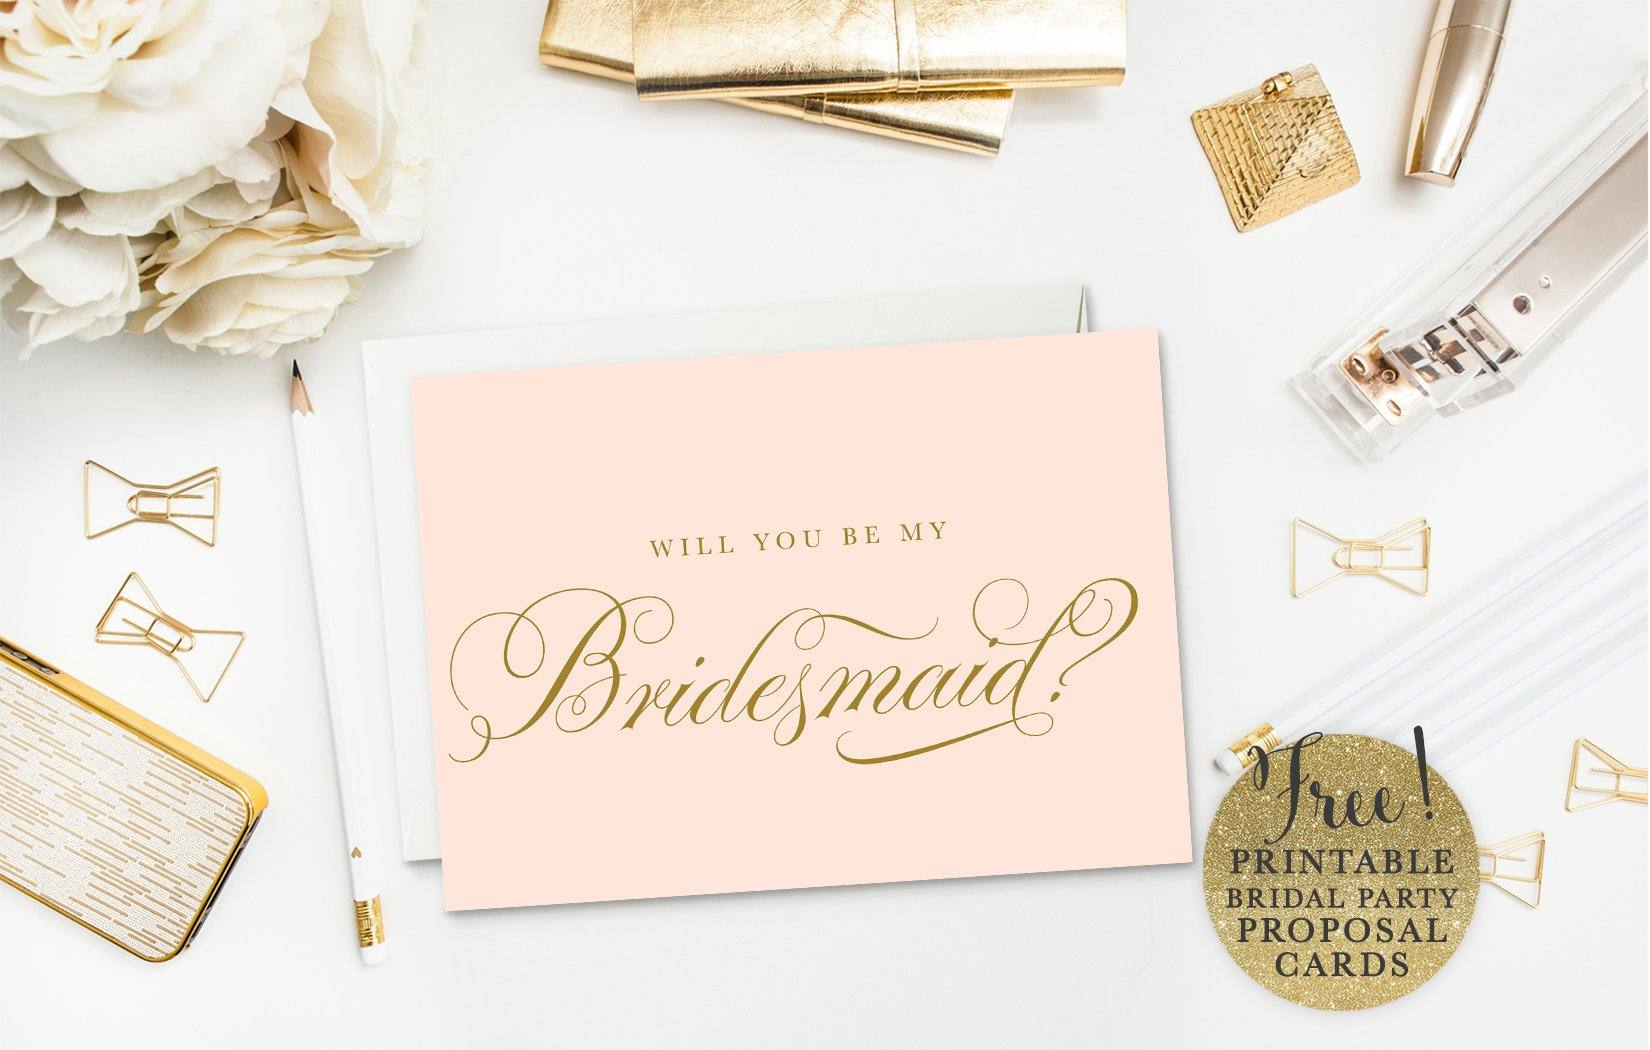 23 Will You Be My Bridesmaid? Cards (Free & Printable) Intended For Will You Be My Bridesmaid Card Template